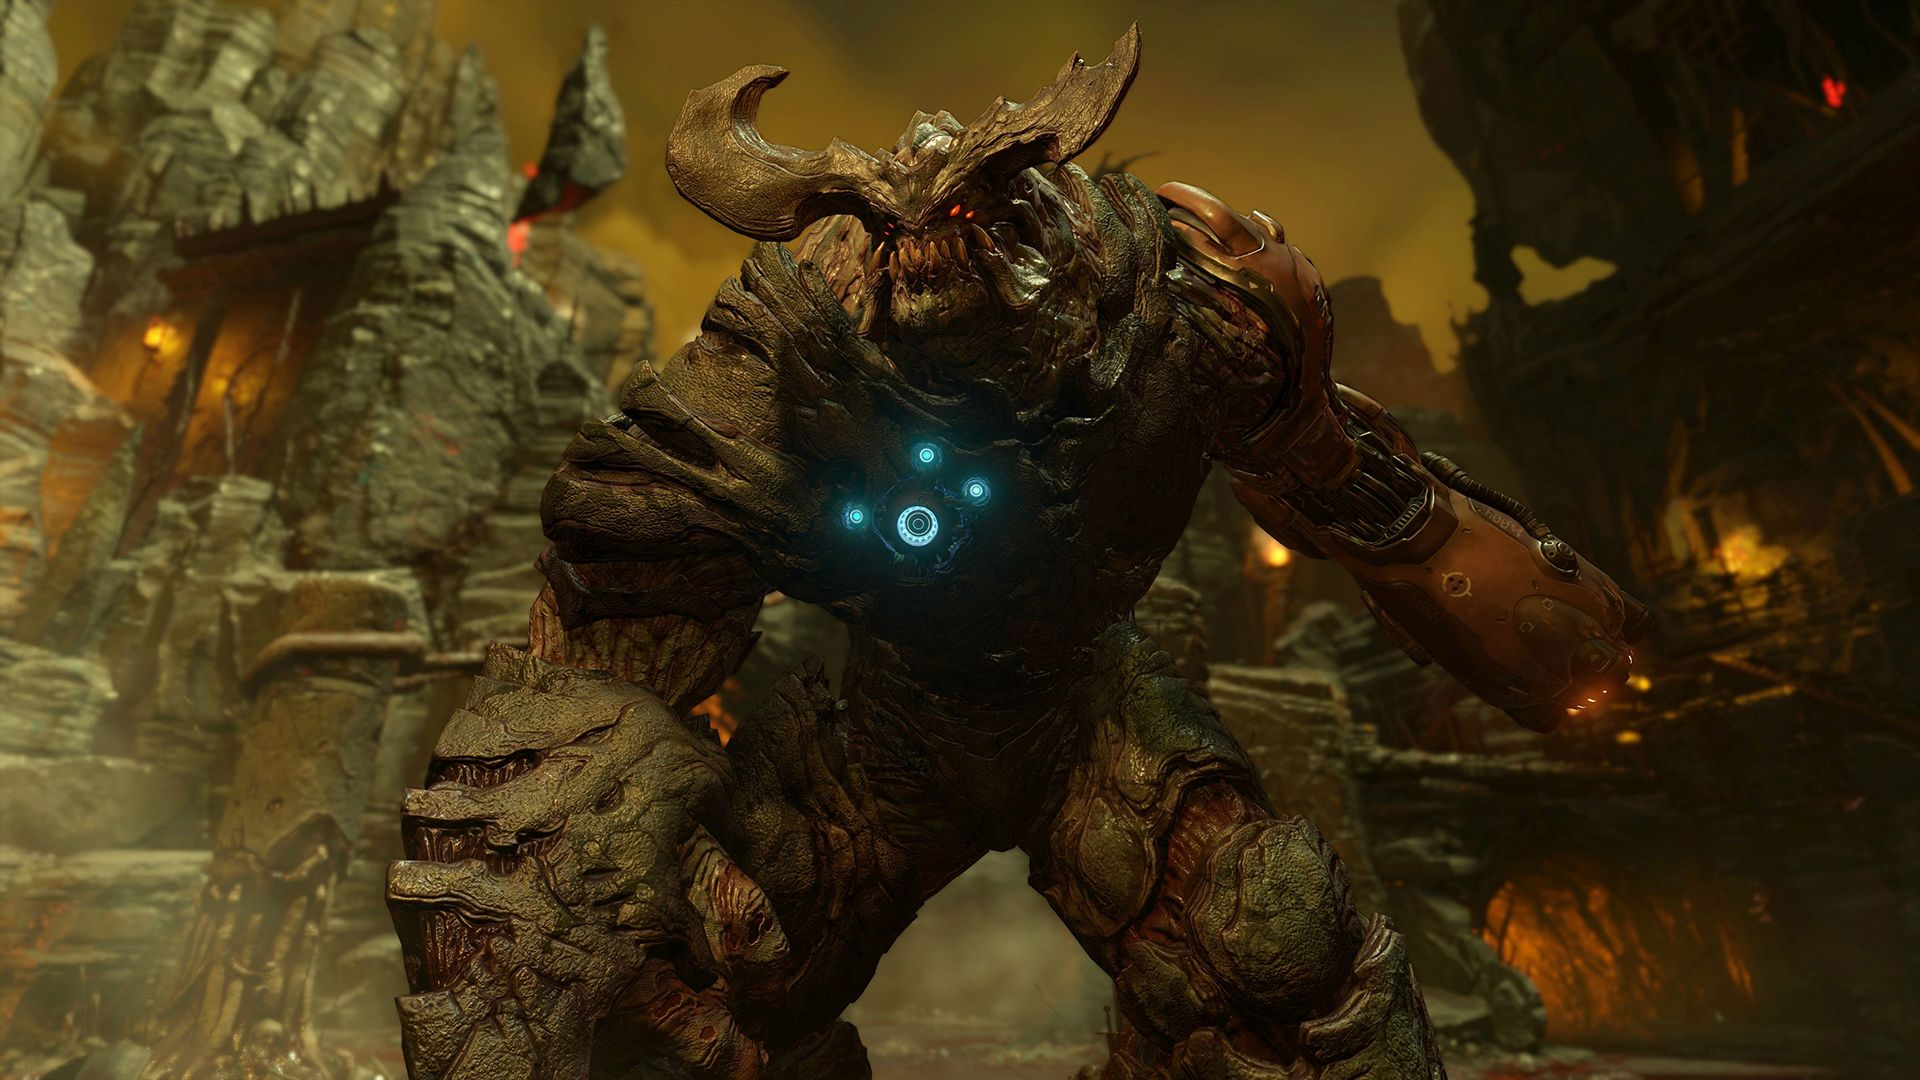 Doom-Closed-Alpha-Gameplay-Feature-Image